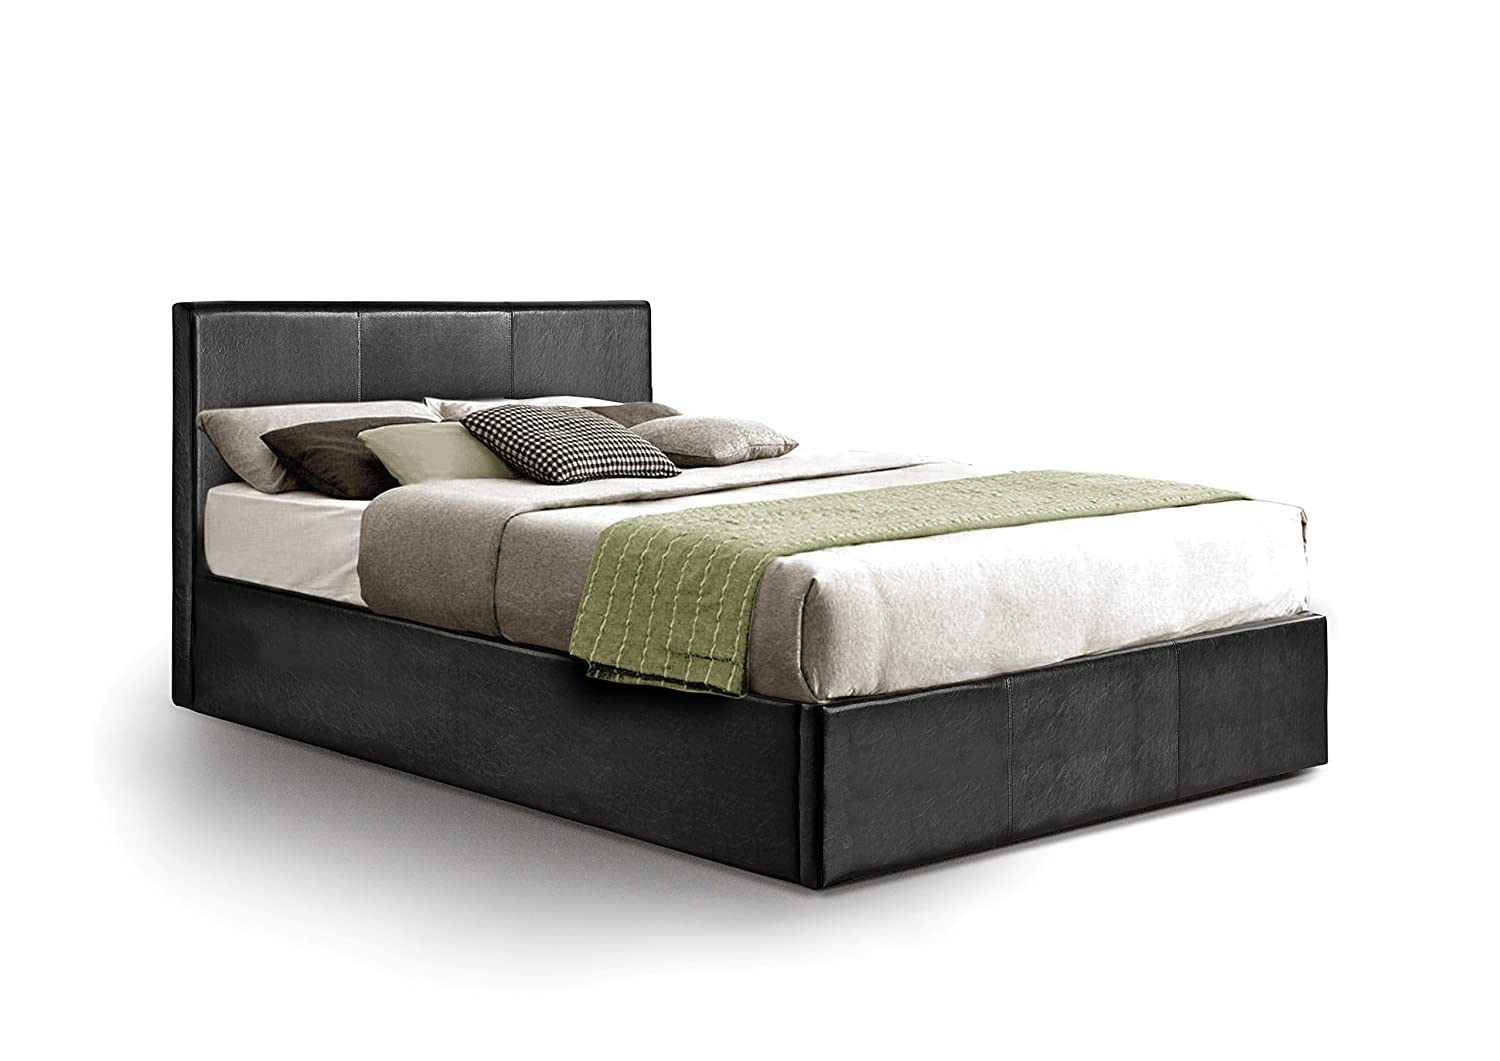 Ottoman Small Double Storage Bed Upholstered in Faux Leather, 4ft, Black Otto-Garrison bg-lu-ot